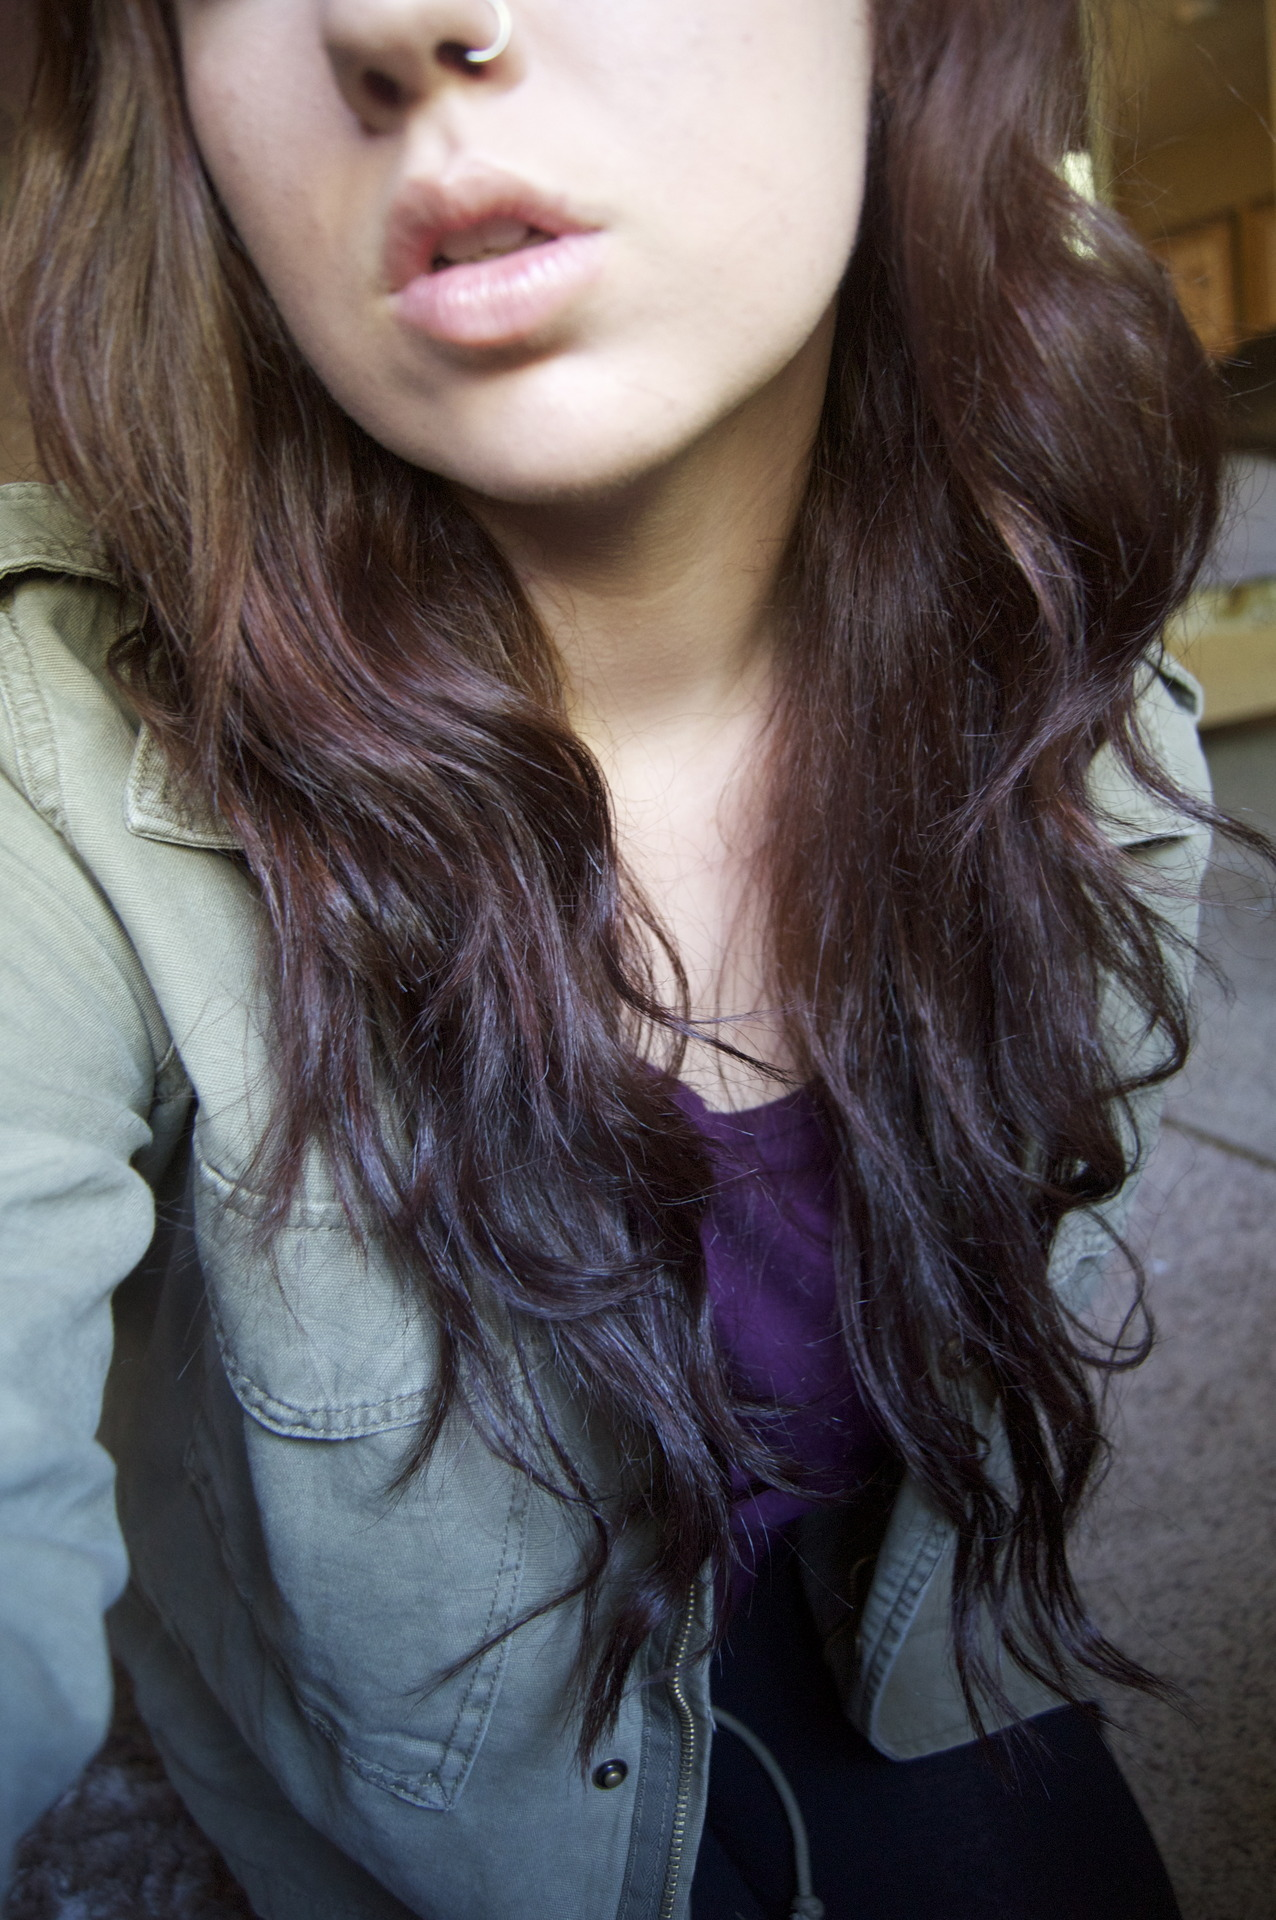 I died my hair today and now its this weird purple color and idk if I like it or not oh well